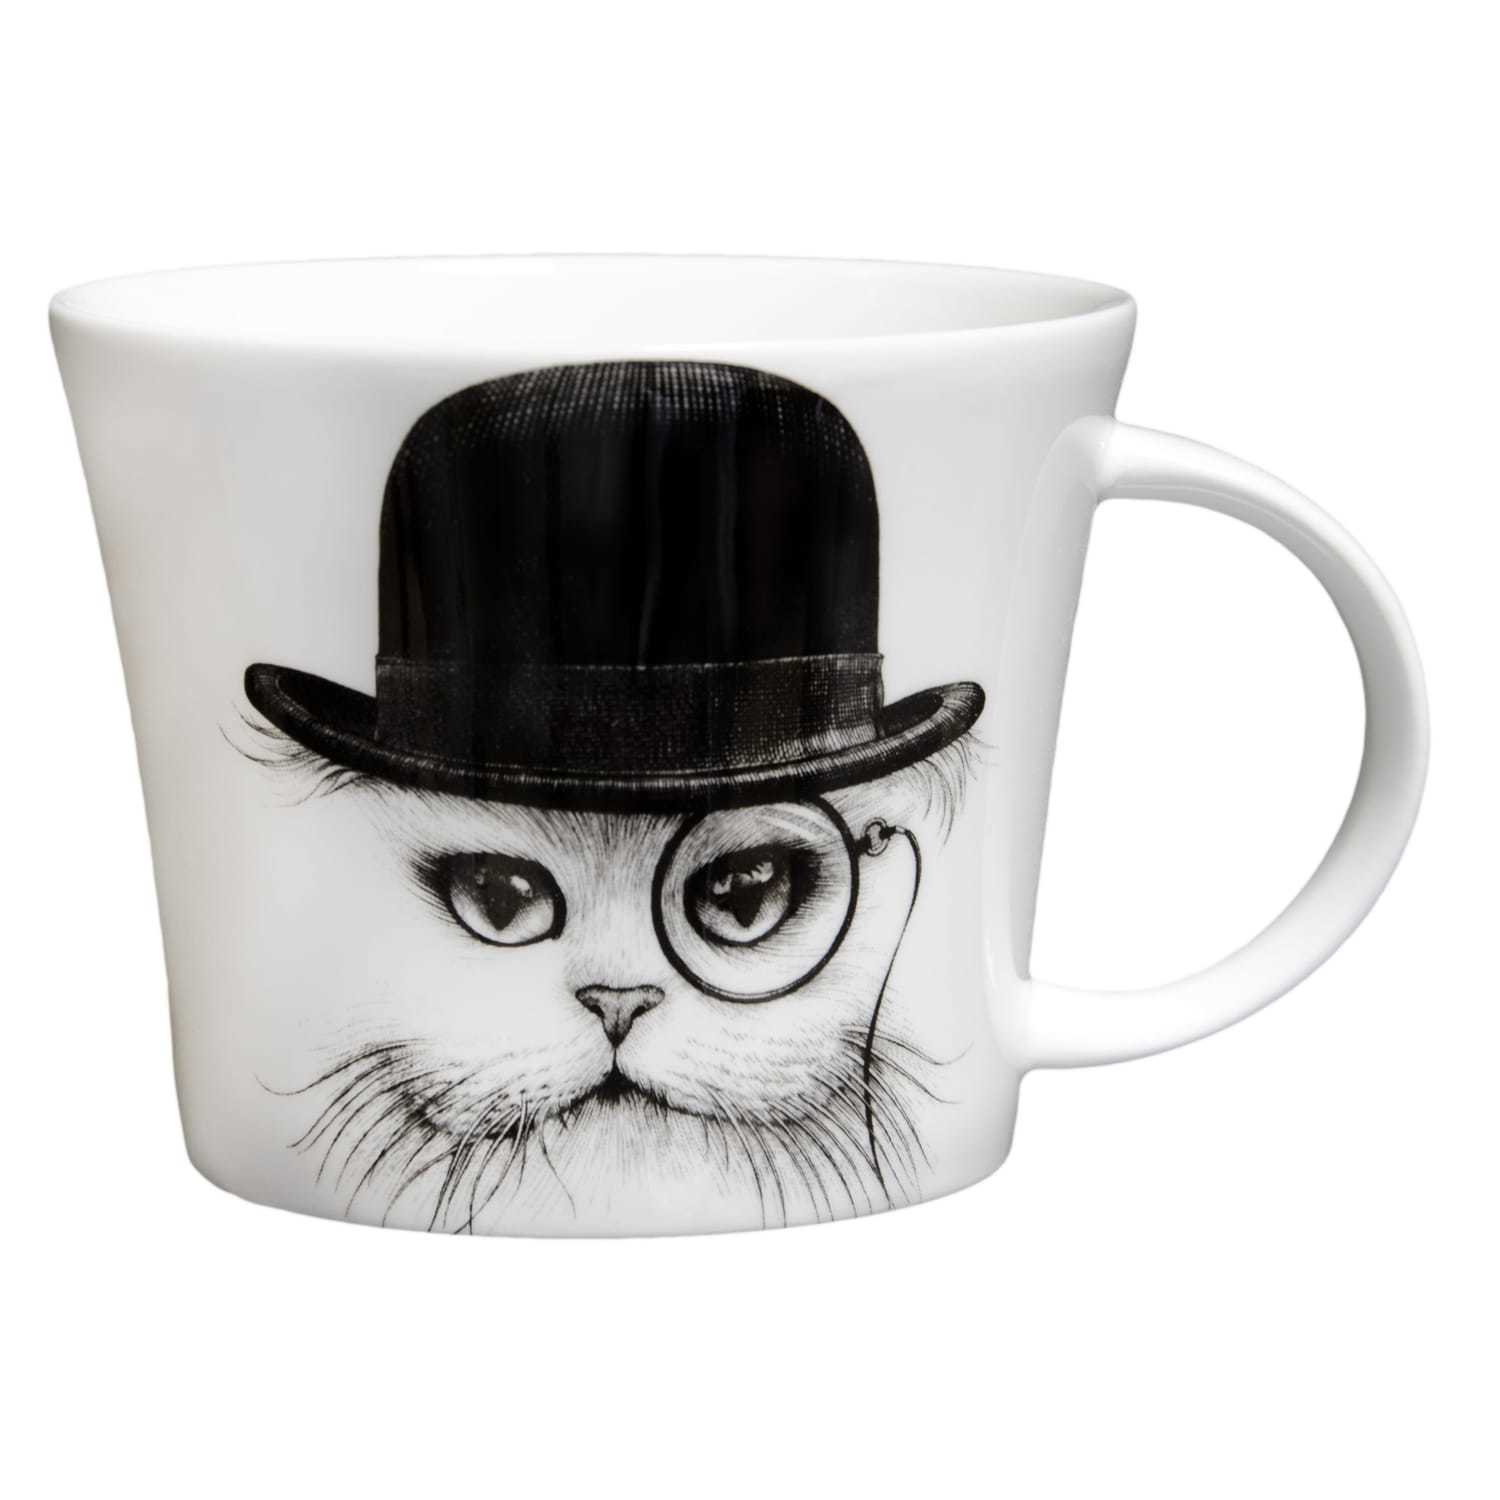 Cat wearing a top hat with a monocle on right eye in ink design on white bone china